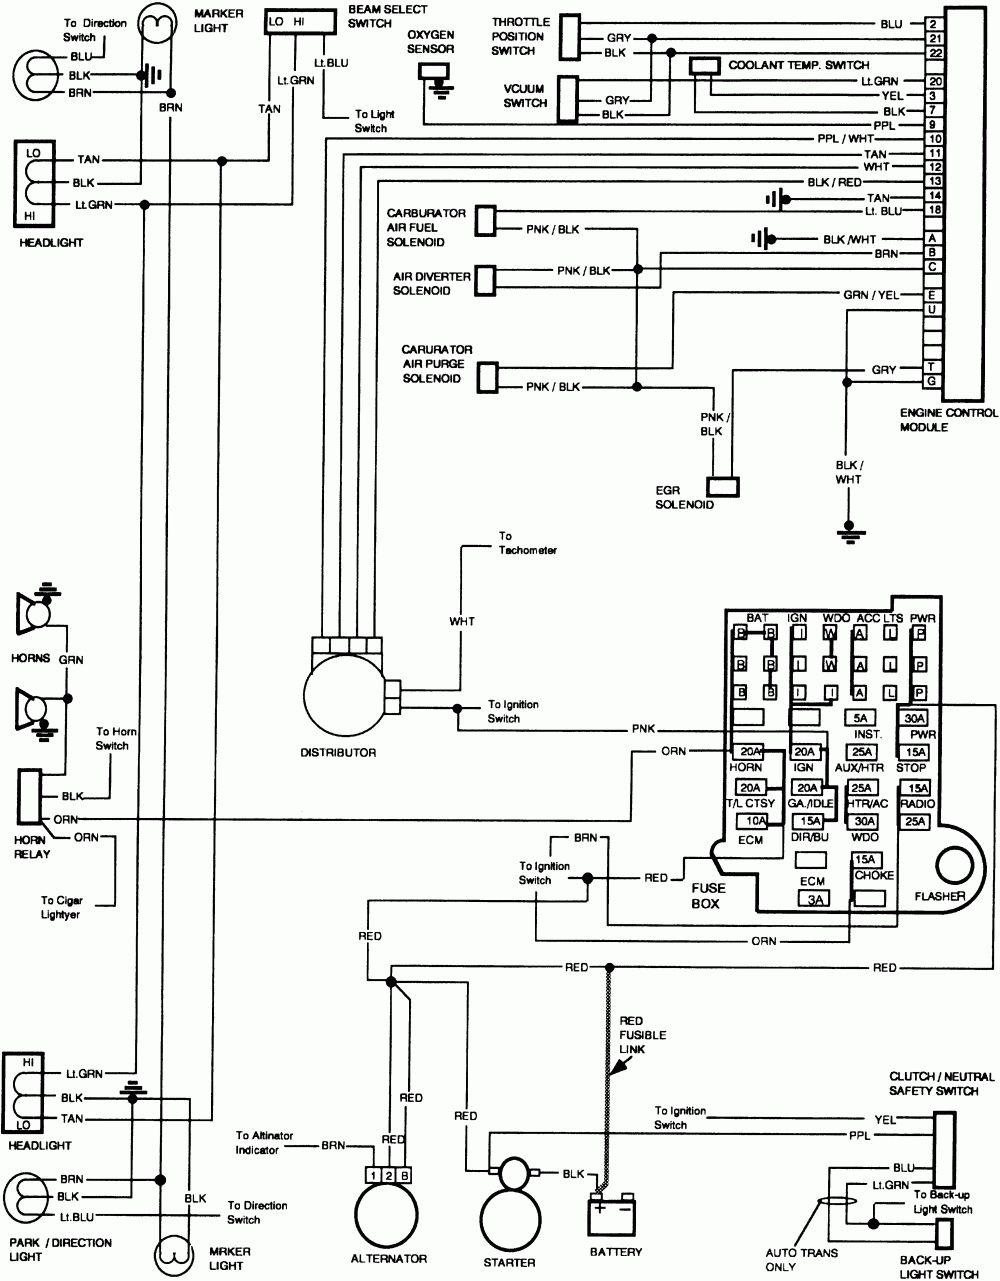 1985 Chevrolet K 5 Engine Diagram Wiring Diagram Reference A Reference A Reteimpresesabina It